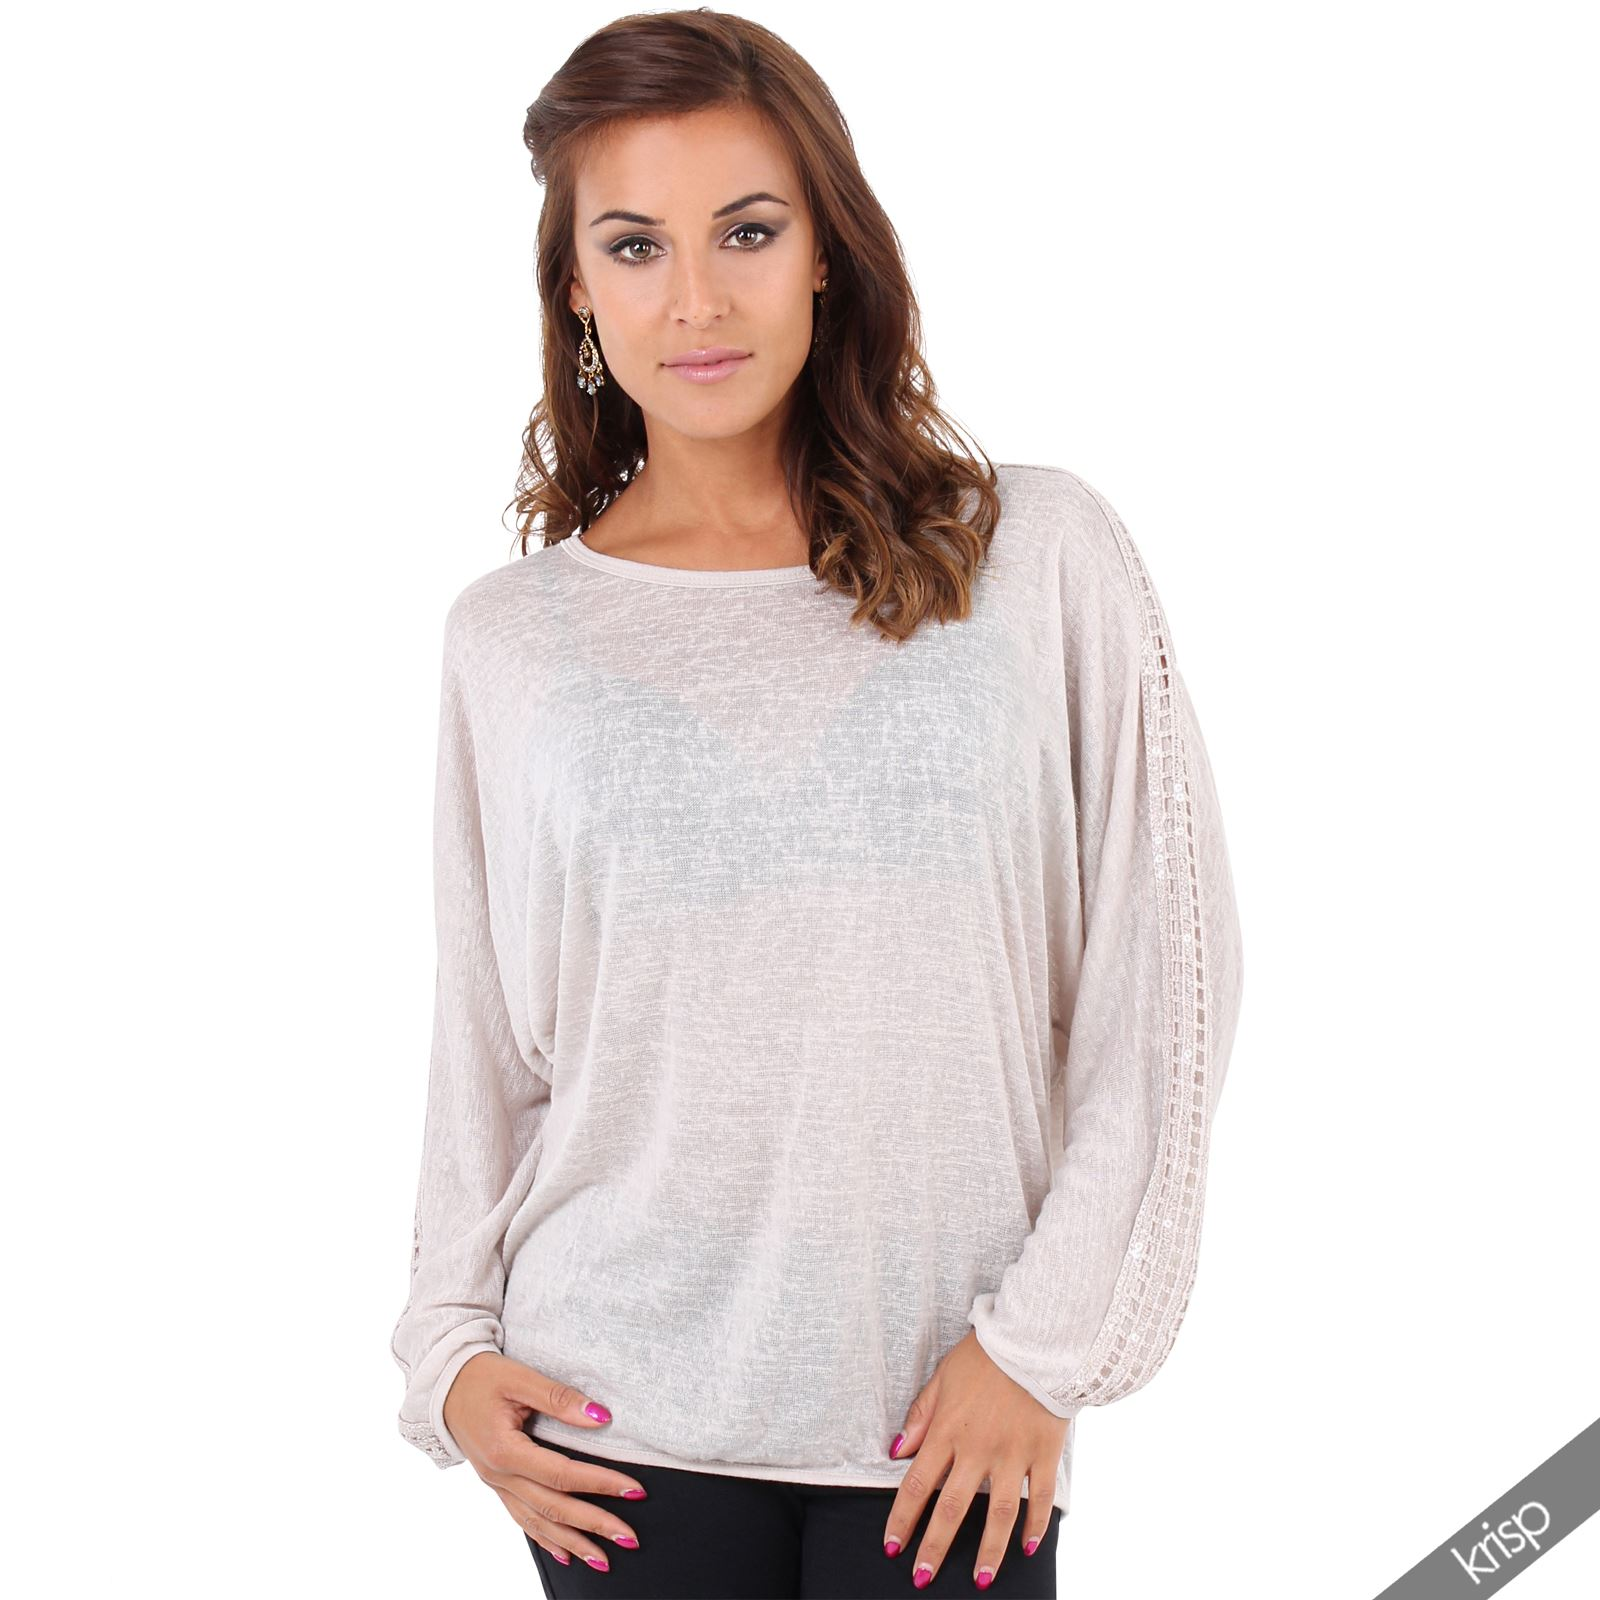 The Women's Embellished Tunic Sweater instantly creates a stylish, laid-back look. The A-line sweater features various types of knit detailing for a one-of-a-kind feel. It has a scalloped hem, an interesting detail on the back and a contrasting knit deta.